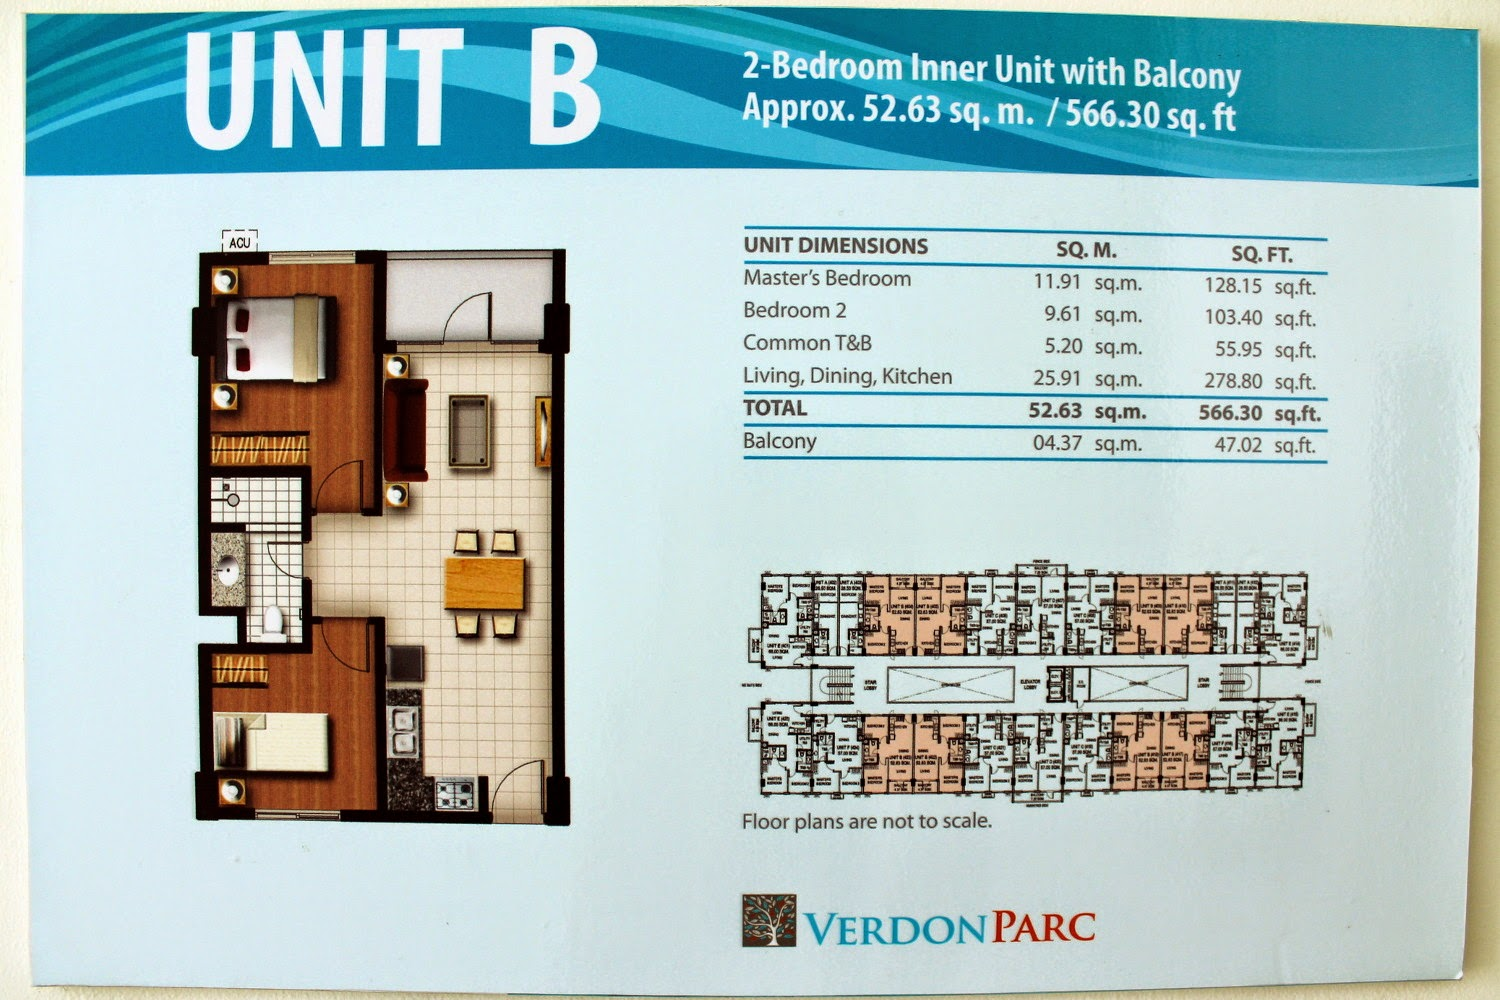 Verdon Parc Unit B (2-Bedroom Inner with Balcony)